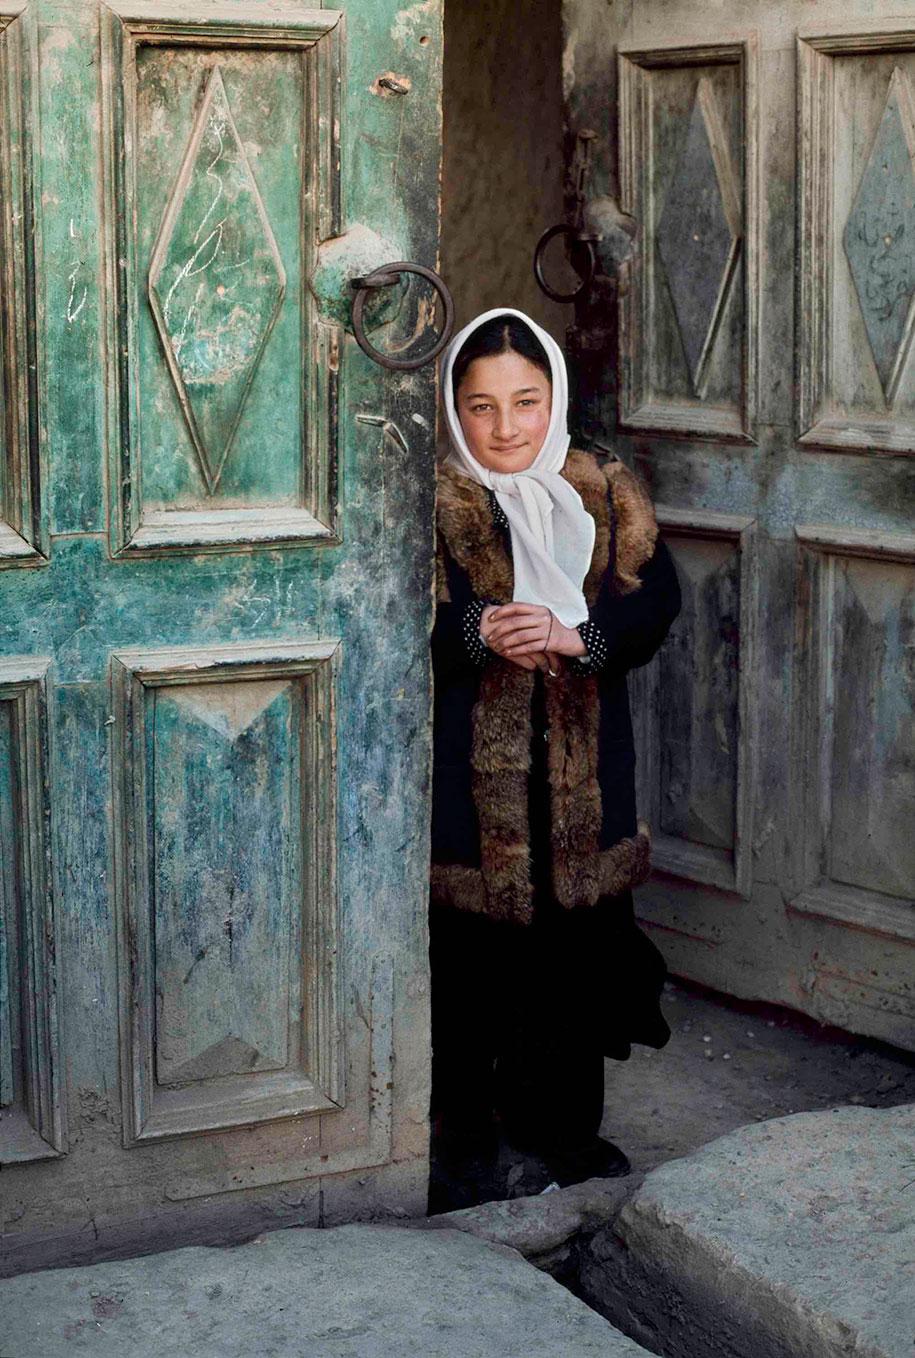 oltre-lo-sguardo-portraits-travel-photography-steve-mccurry-7